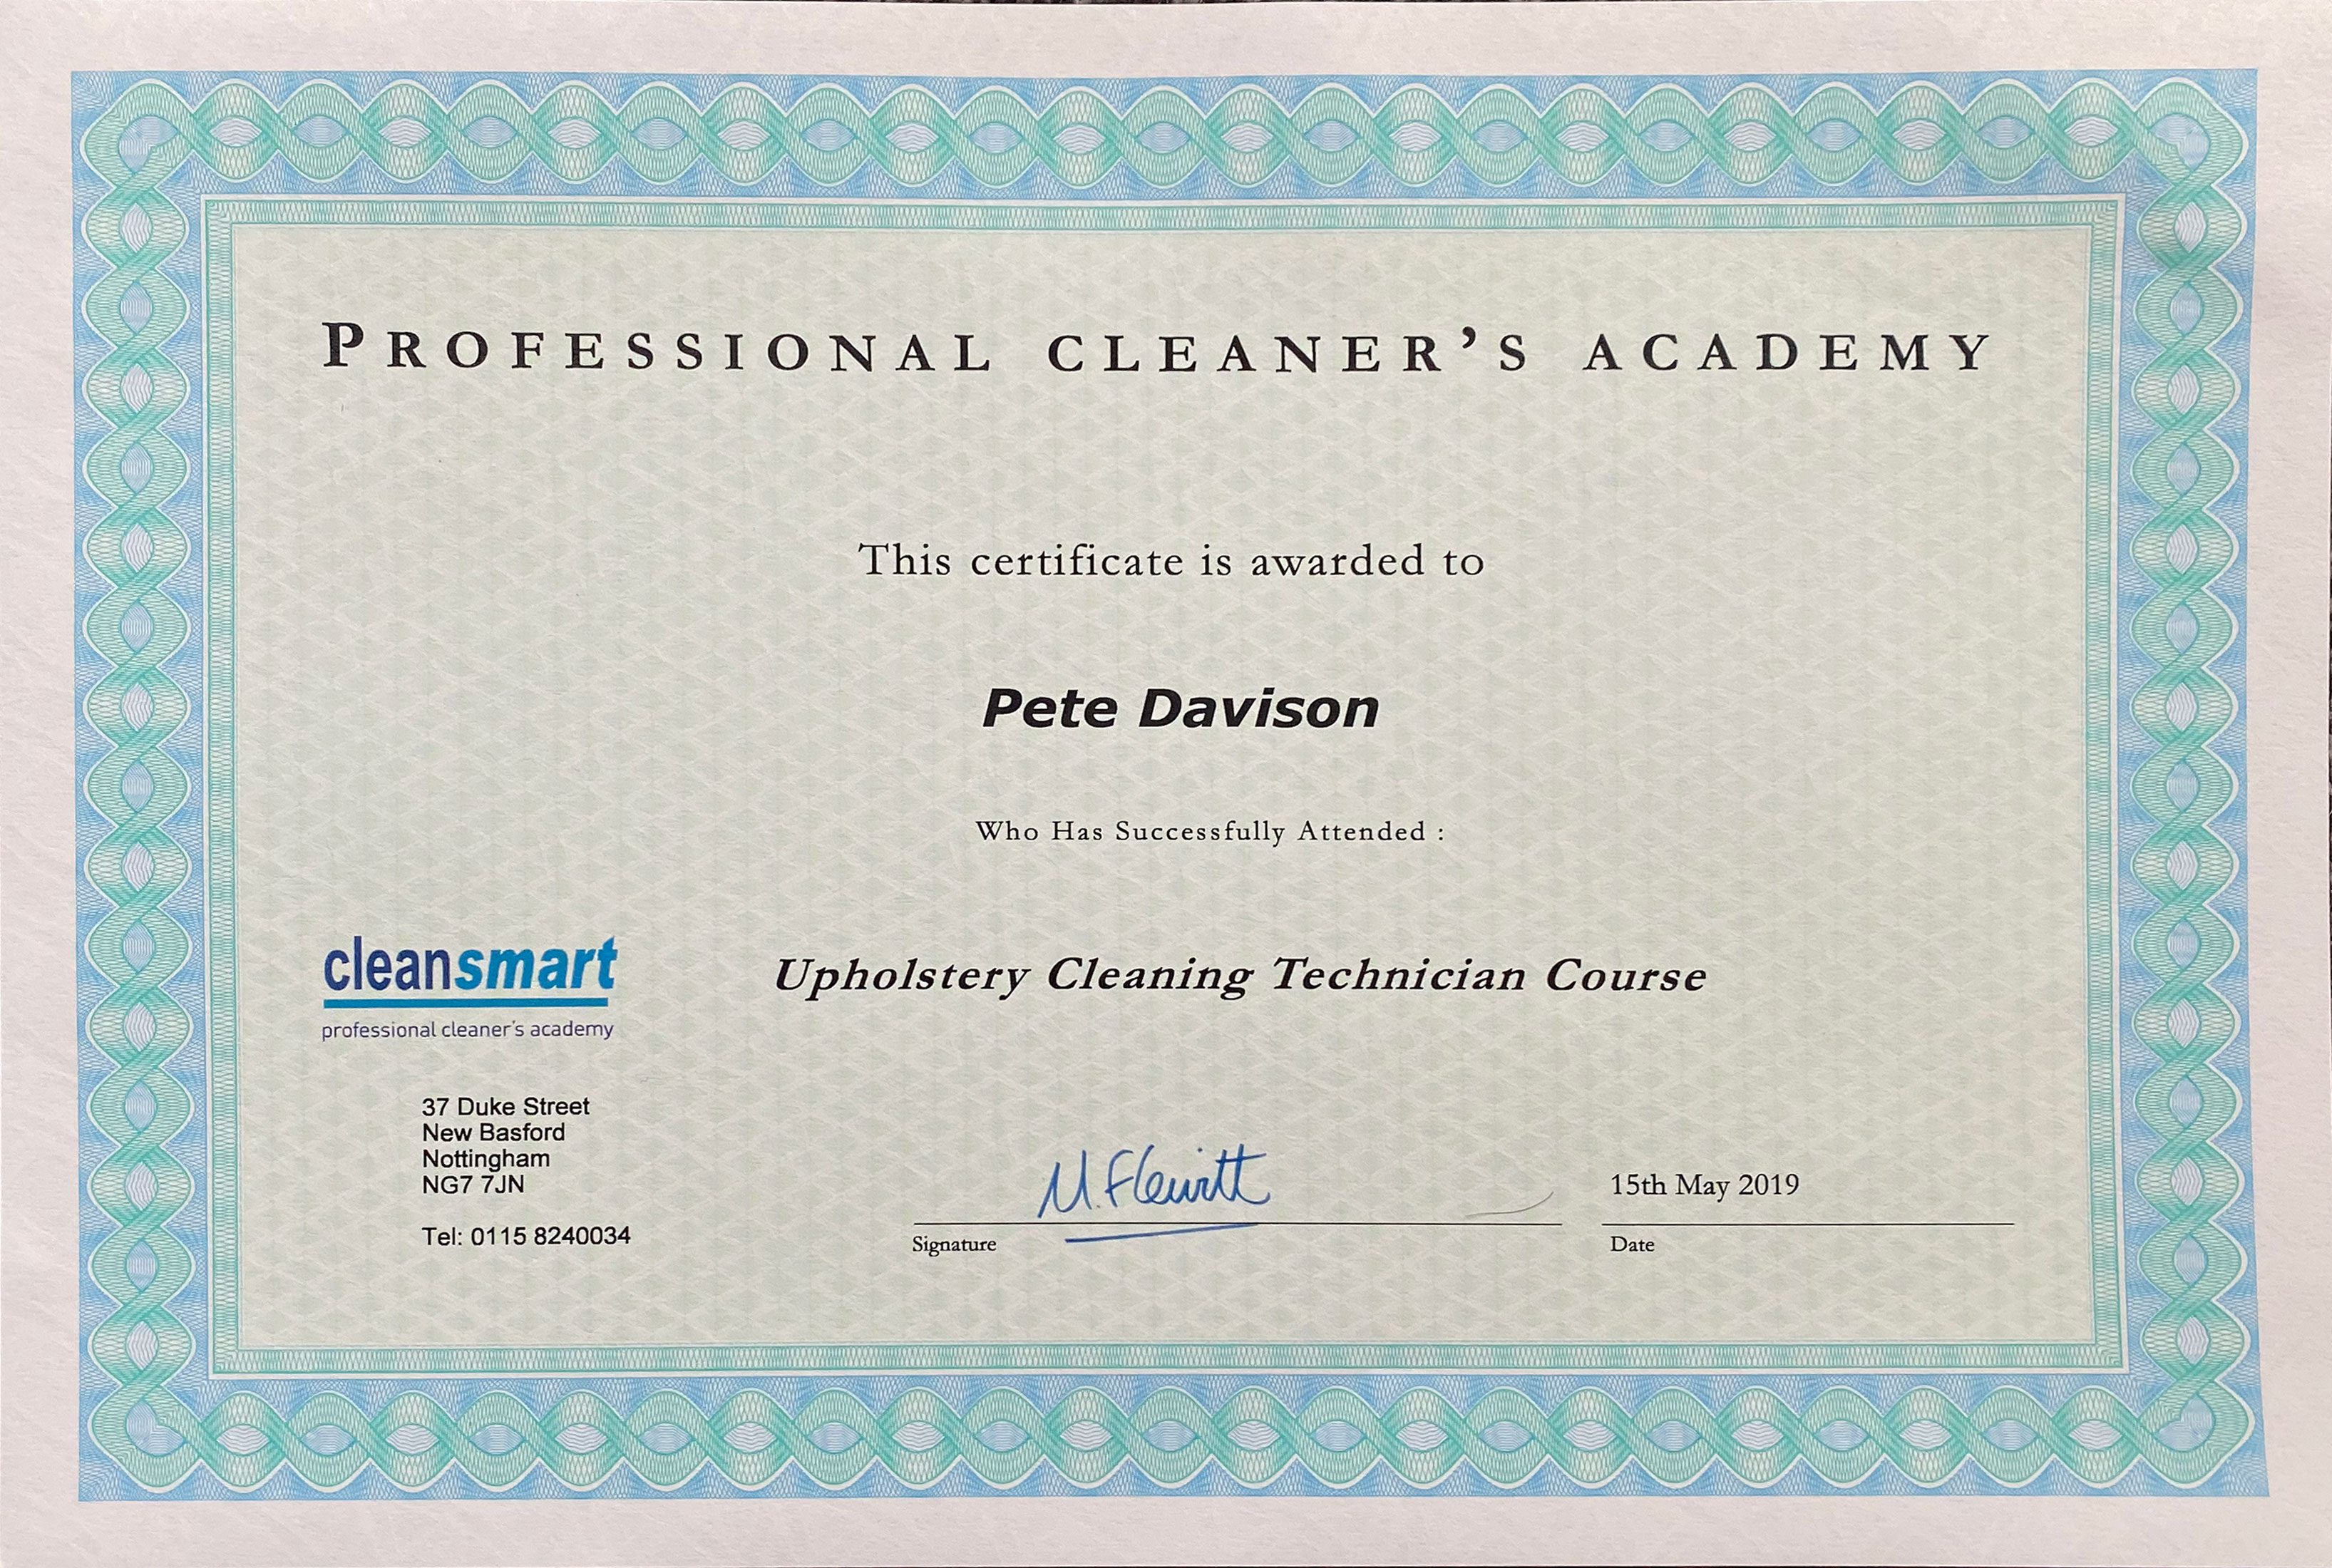 Cleansmart certificate for upholstery cleaning technicians course